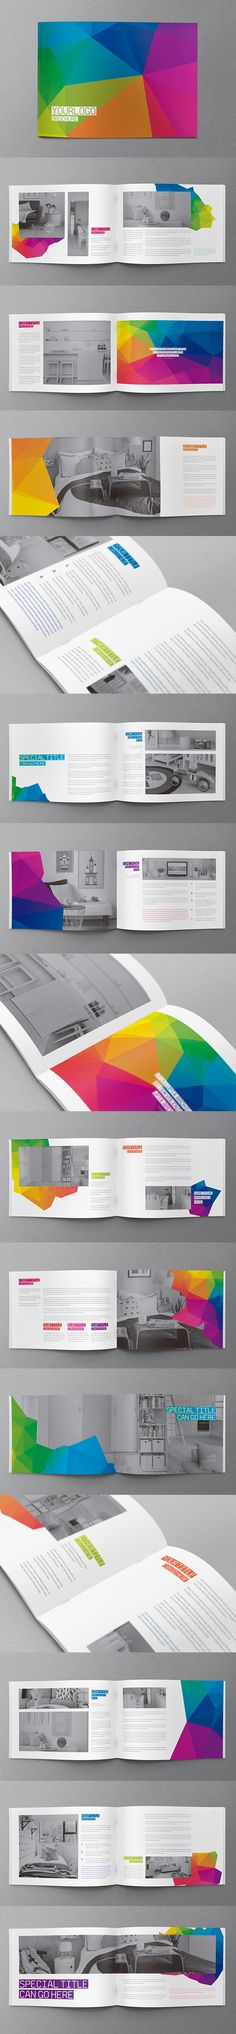 Abstract Modern Brochure. Download here: http://graphicriver.net/item/abstract-modern-brochure/11159106?ref=abradesign #brochure #design